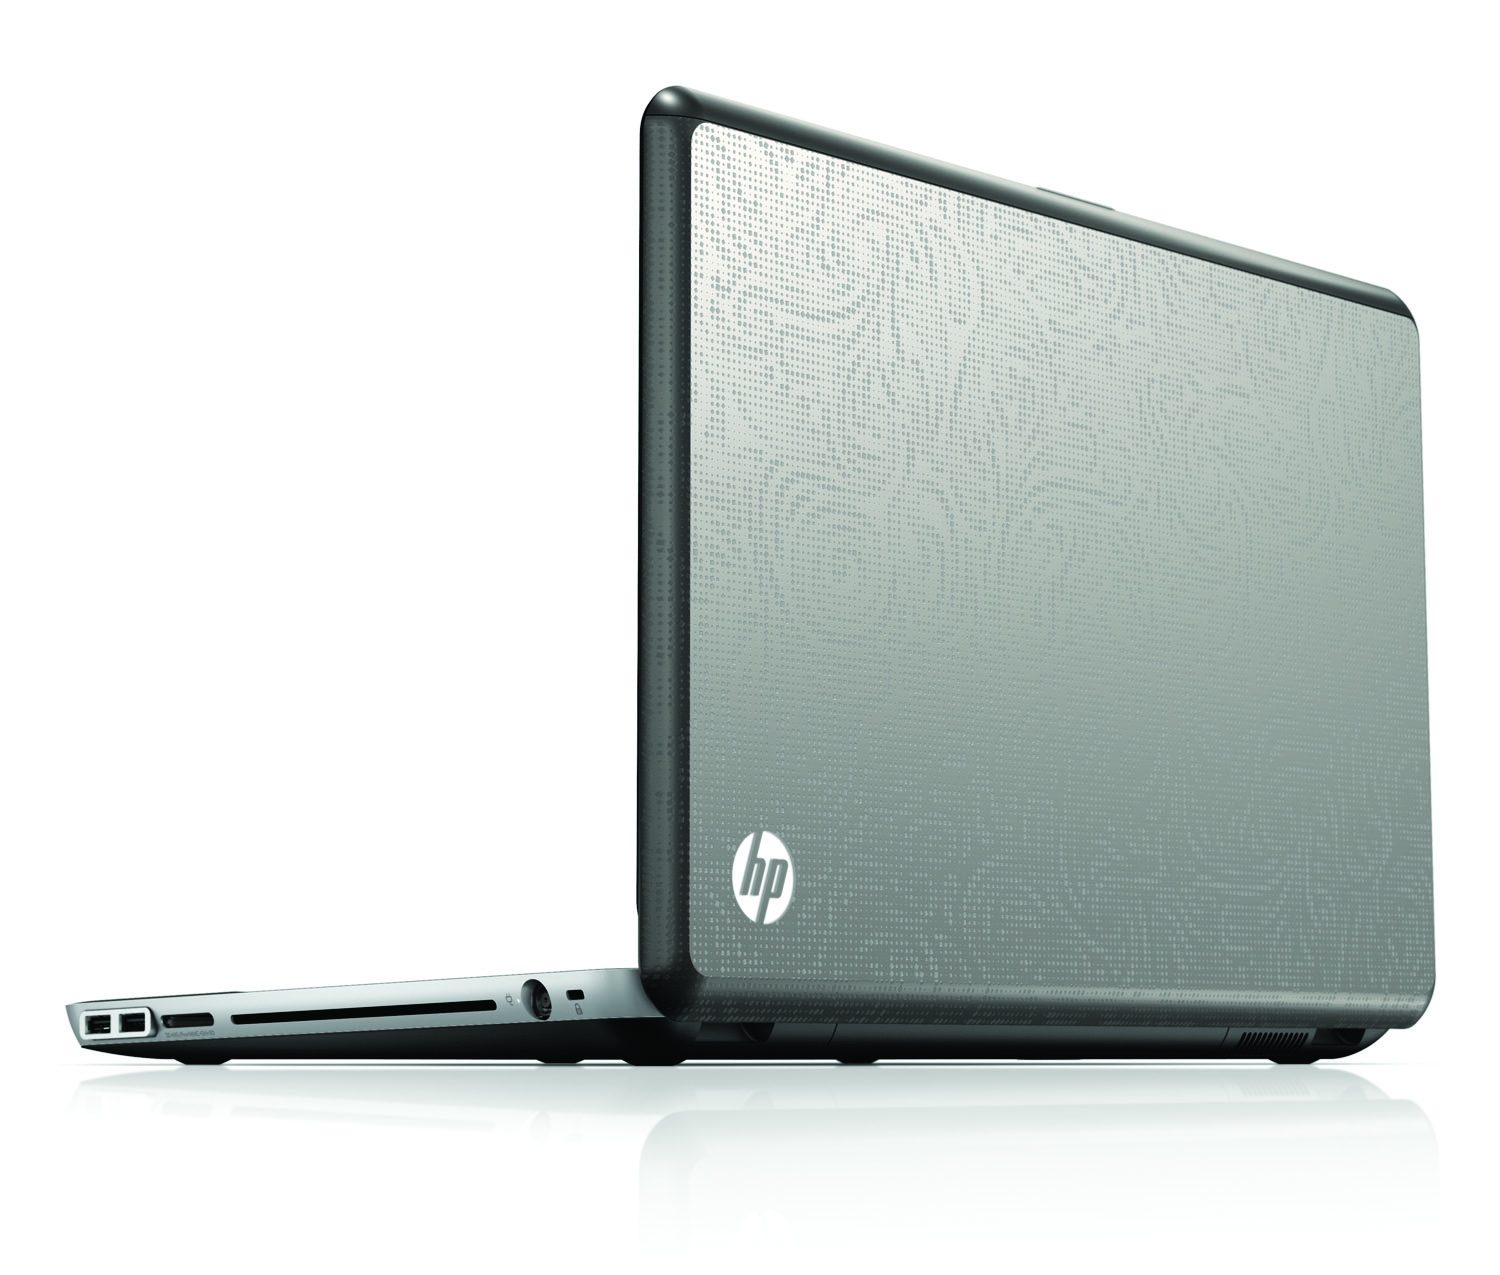 HP Envy 17, rear left open on white